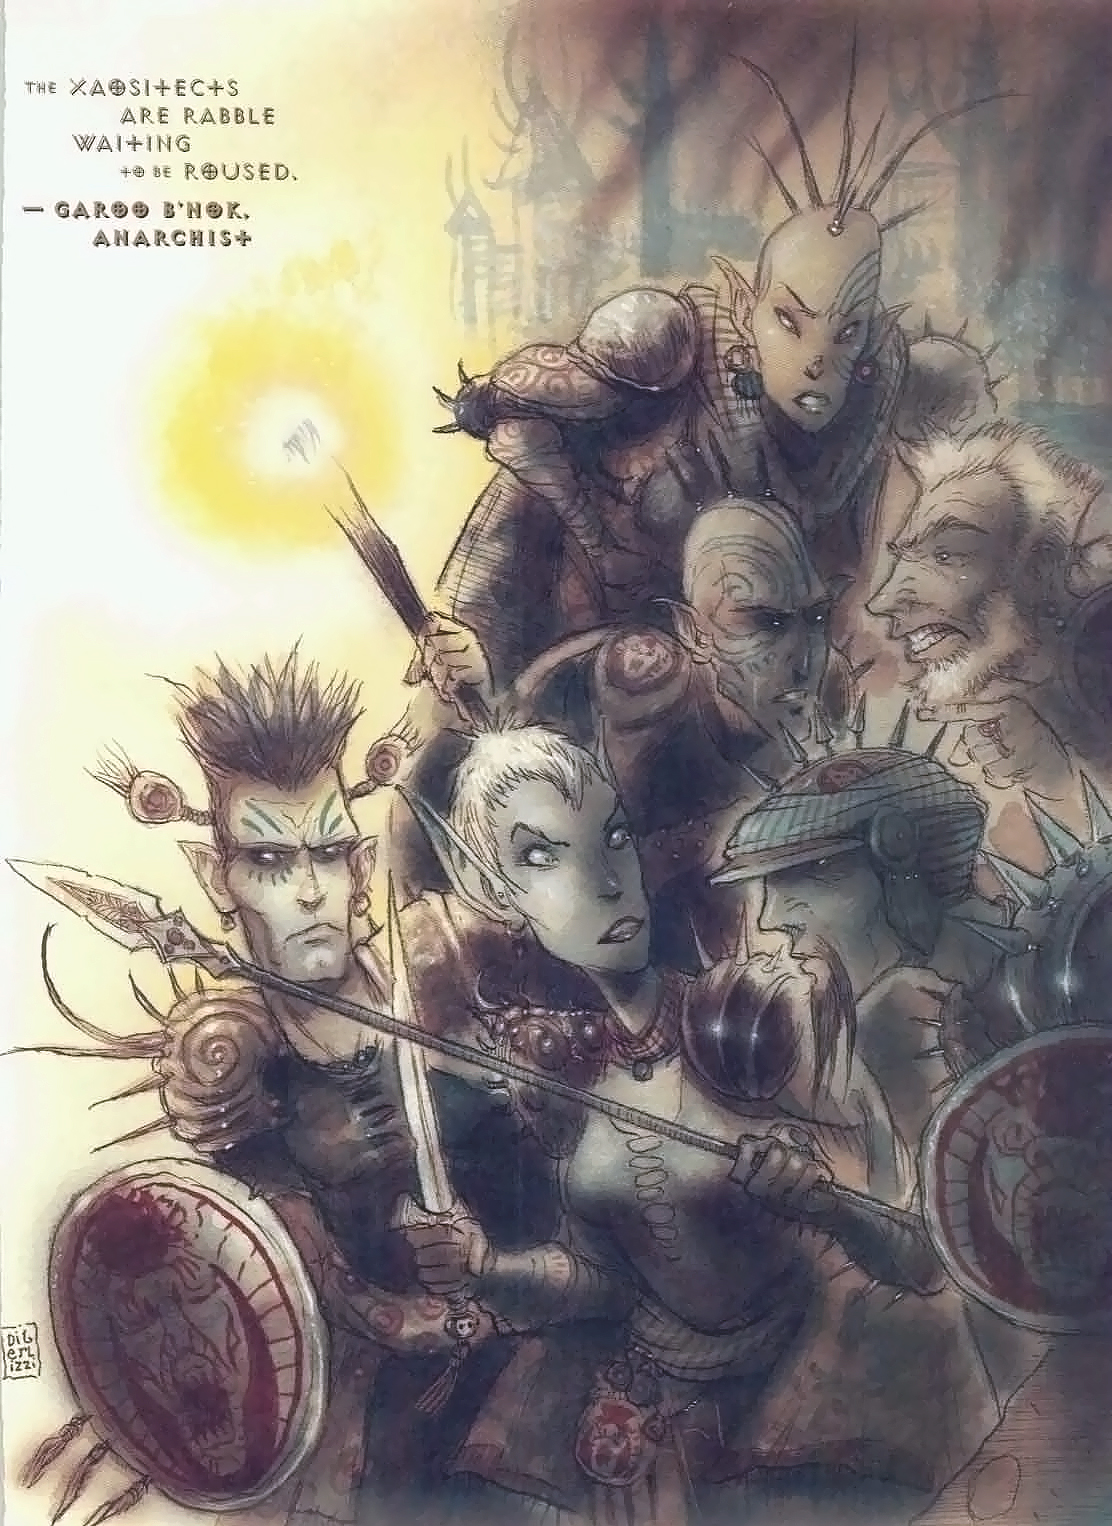 {$tags} Xaositect in agguato (tiefling e drow anche) - by Tony Diterlizzi TSR – The Factol's Manifesto (1995-06) © Wizards of the Coast & Hasbro